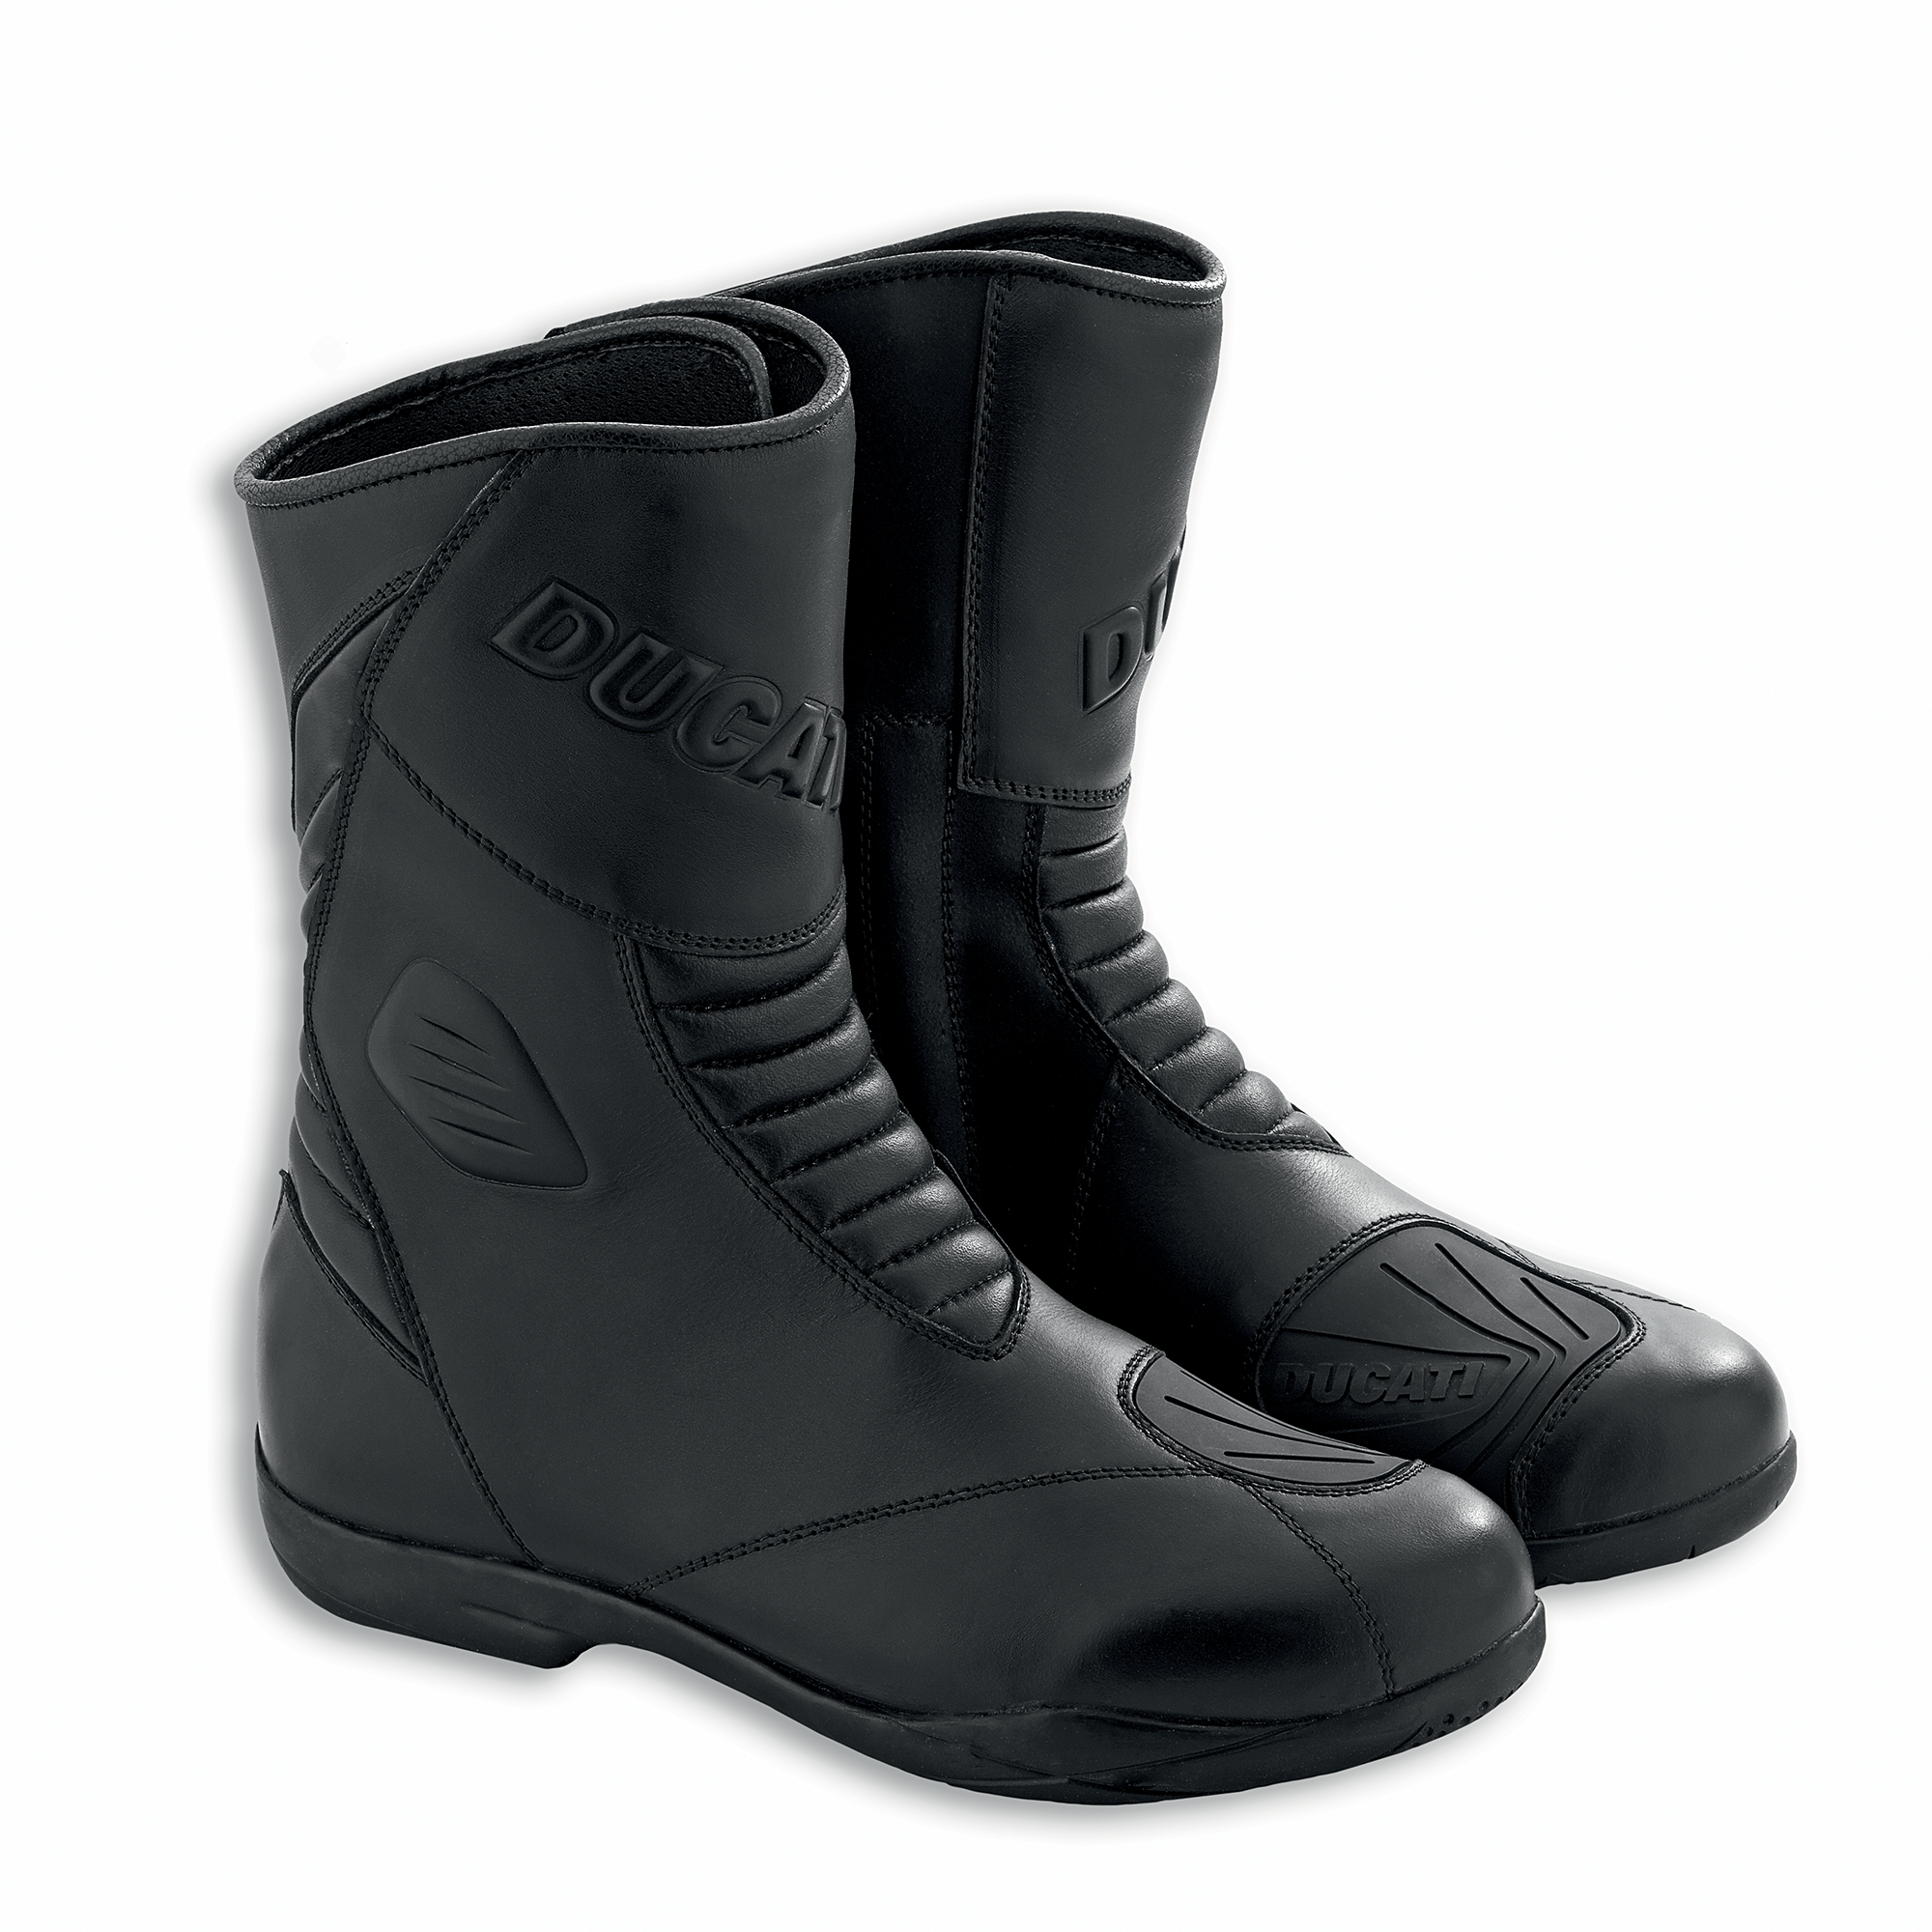 Tour Touring boots 981033137